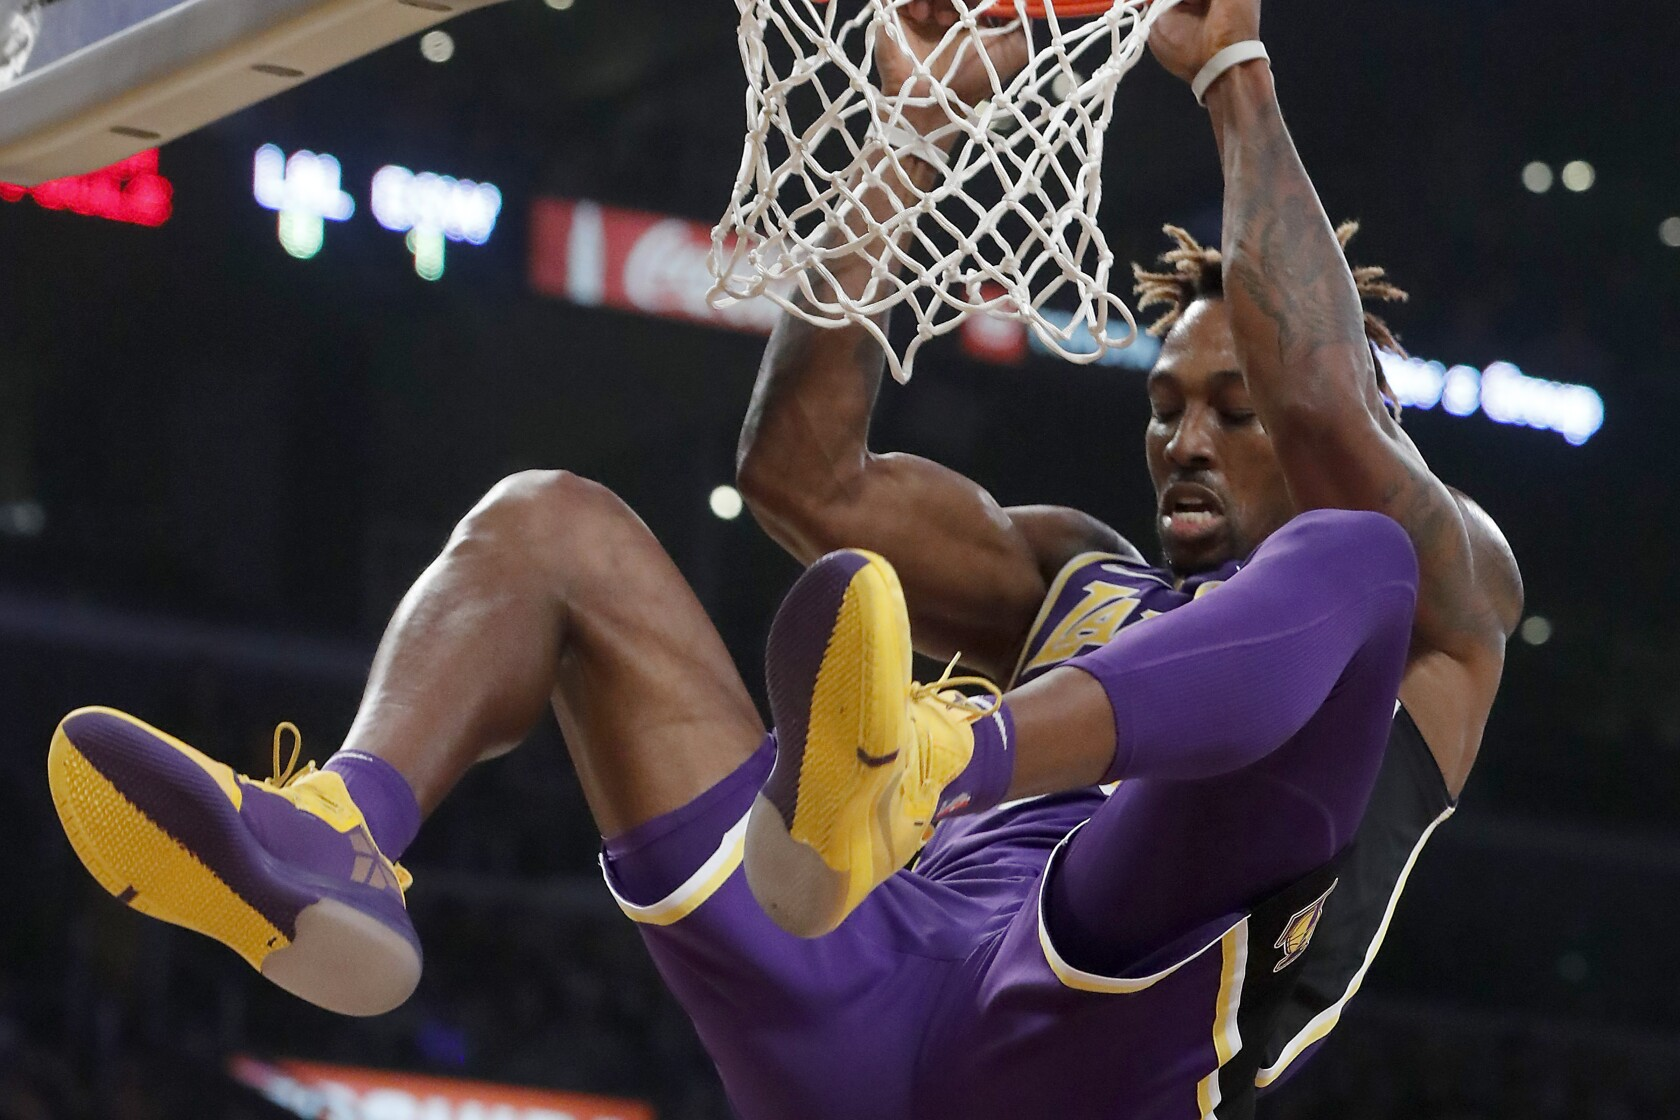 Lakers continue their hot start in dominant win over injury-depleted Warriors